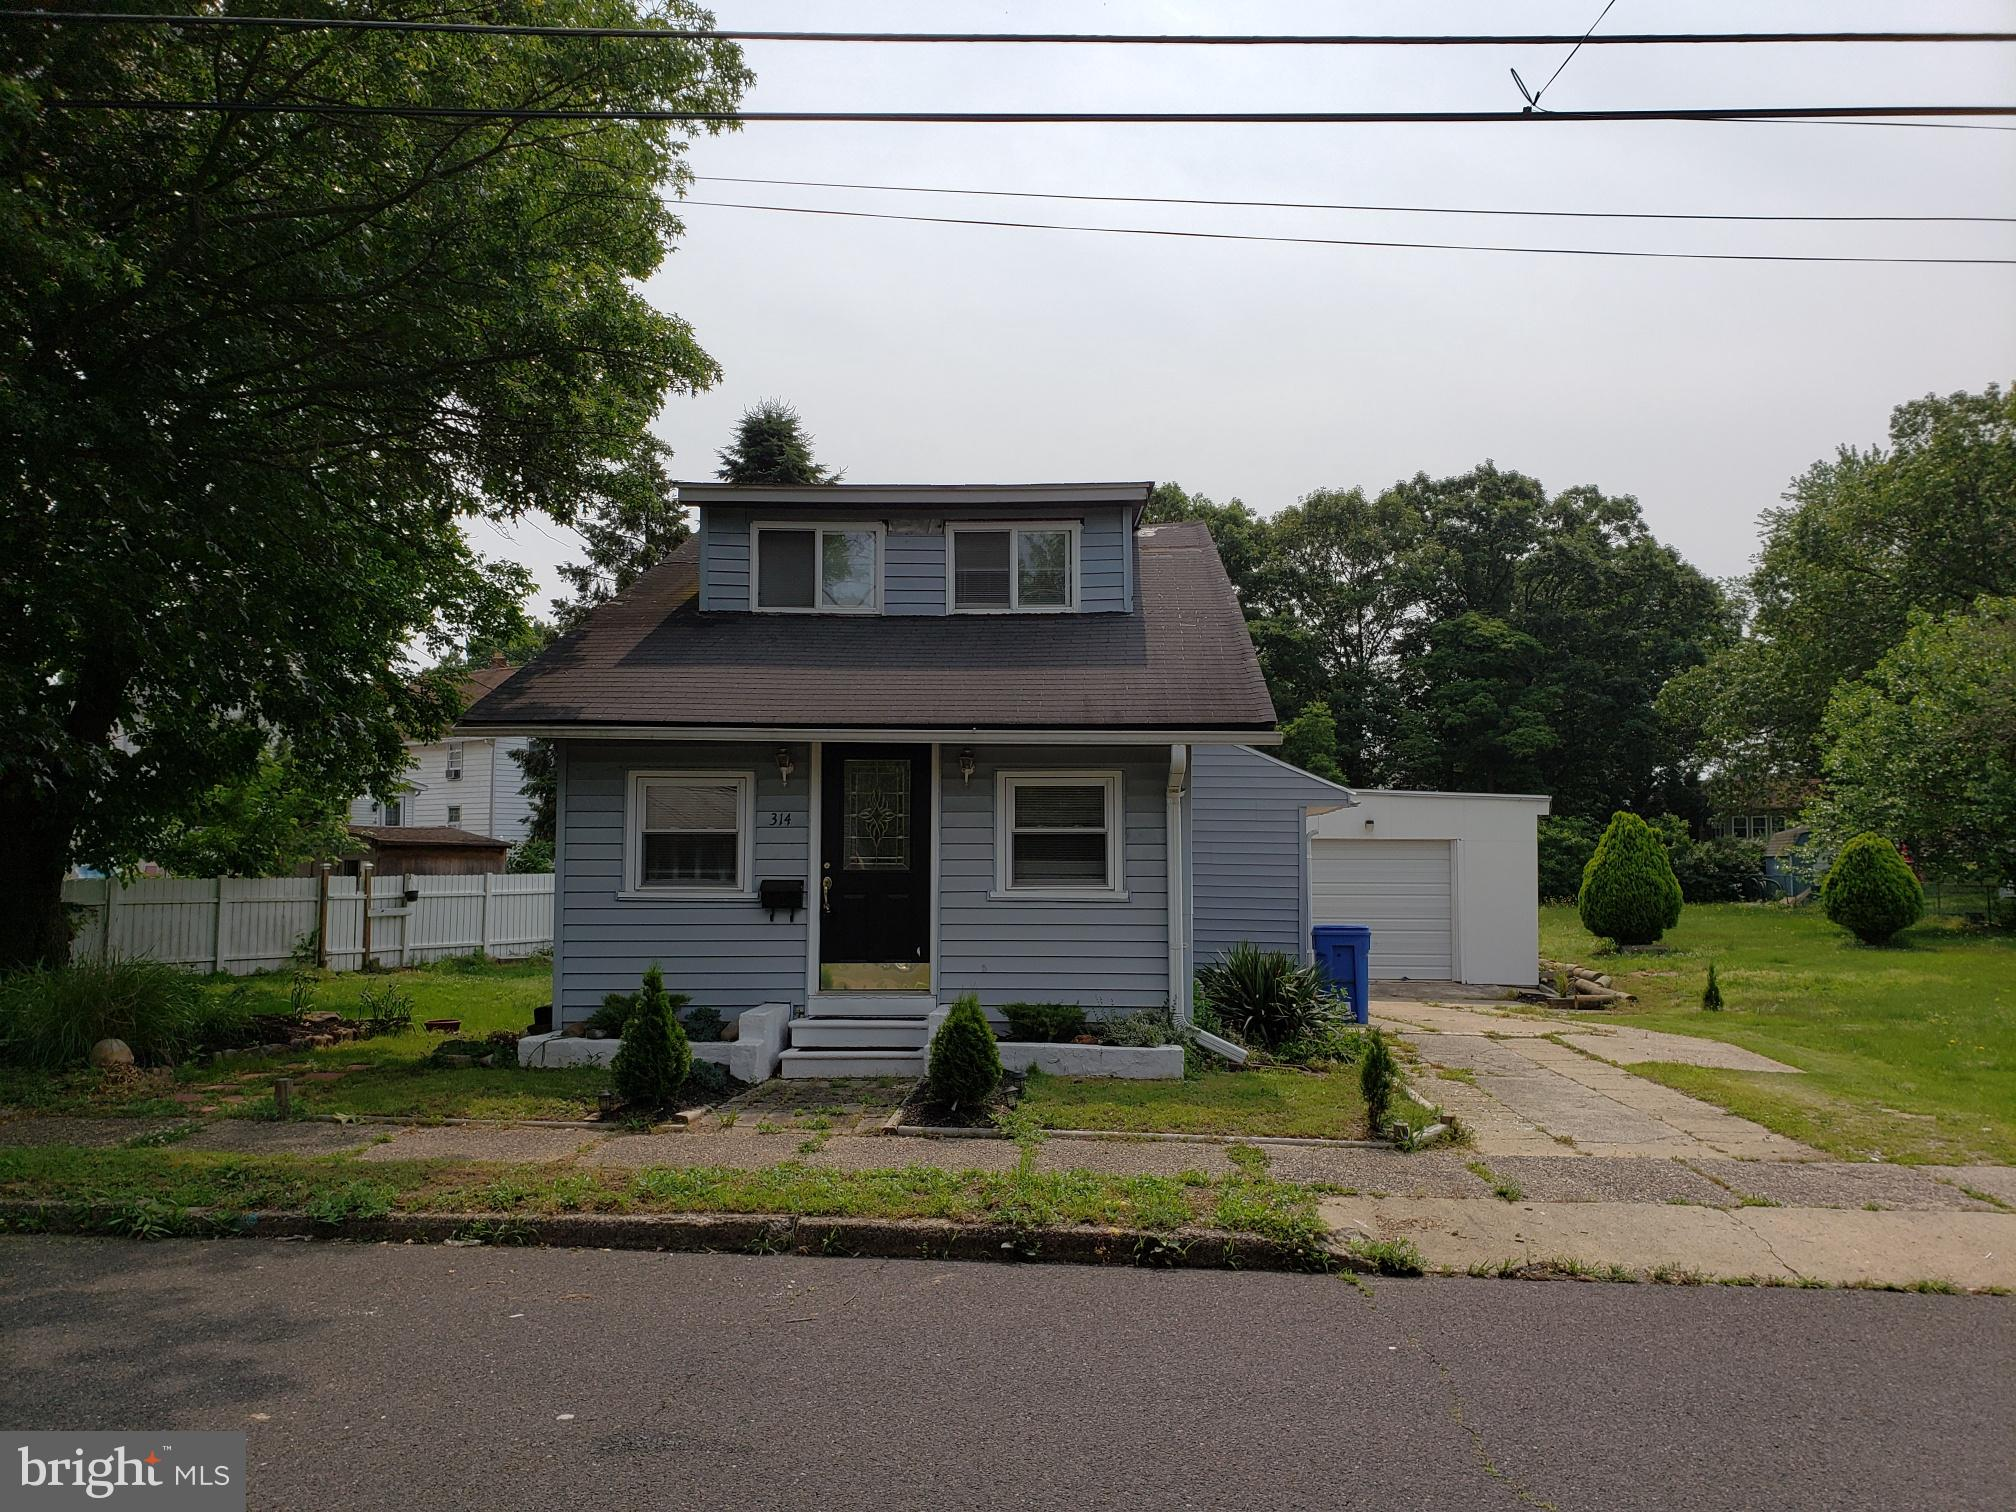 314 N 2ND STREET, NATIONAL PARK, NJ 08063